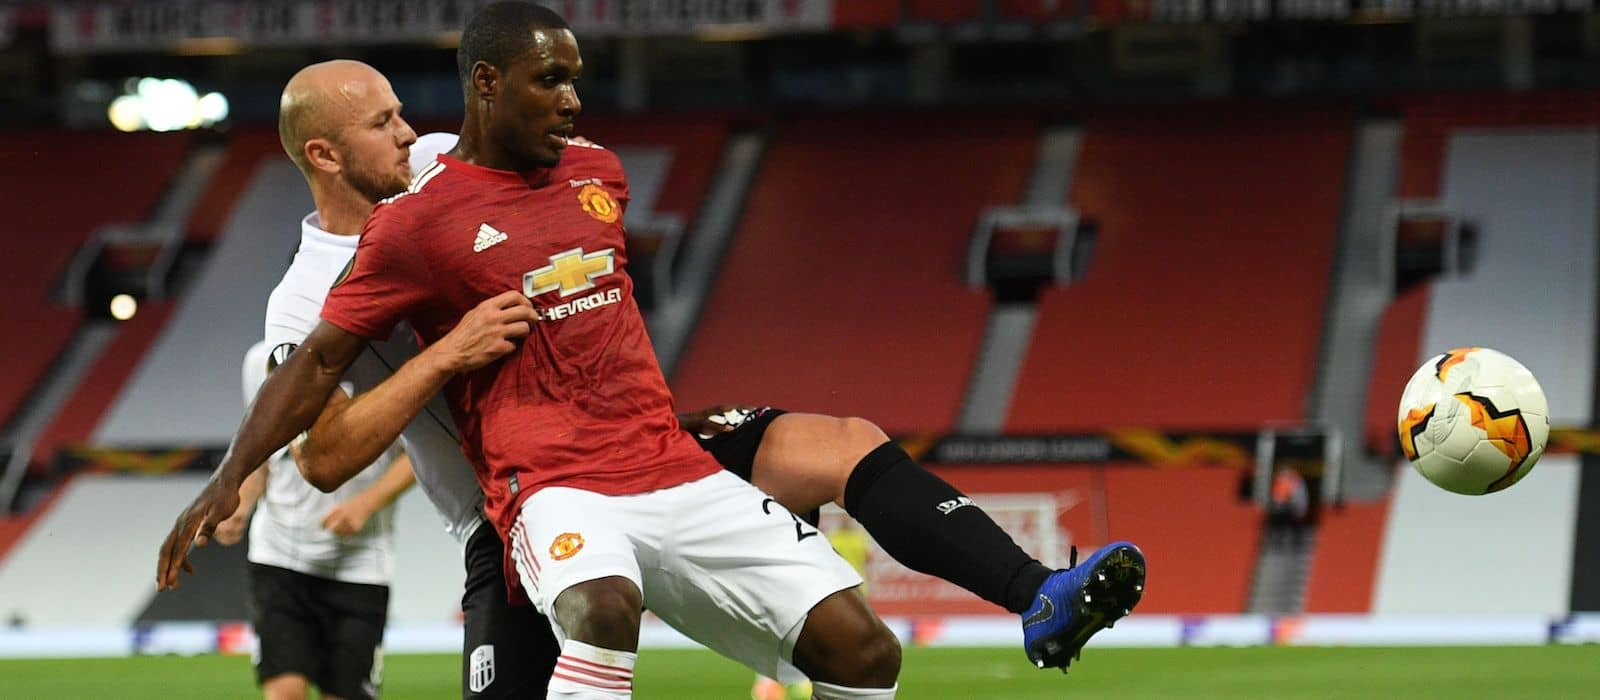 Player ratings: Manchester United 2-1 Lask – Martial's class wins the game